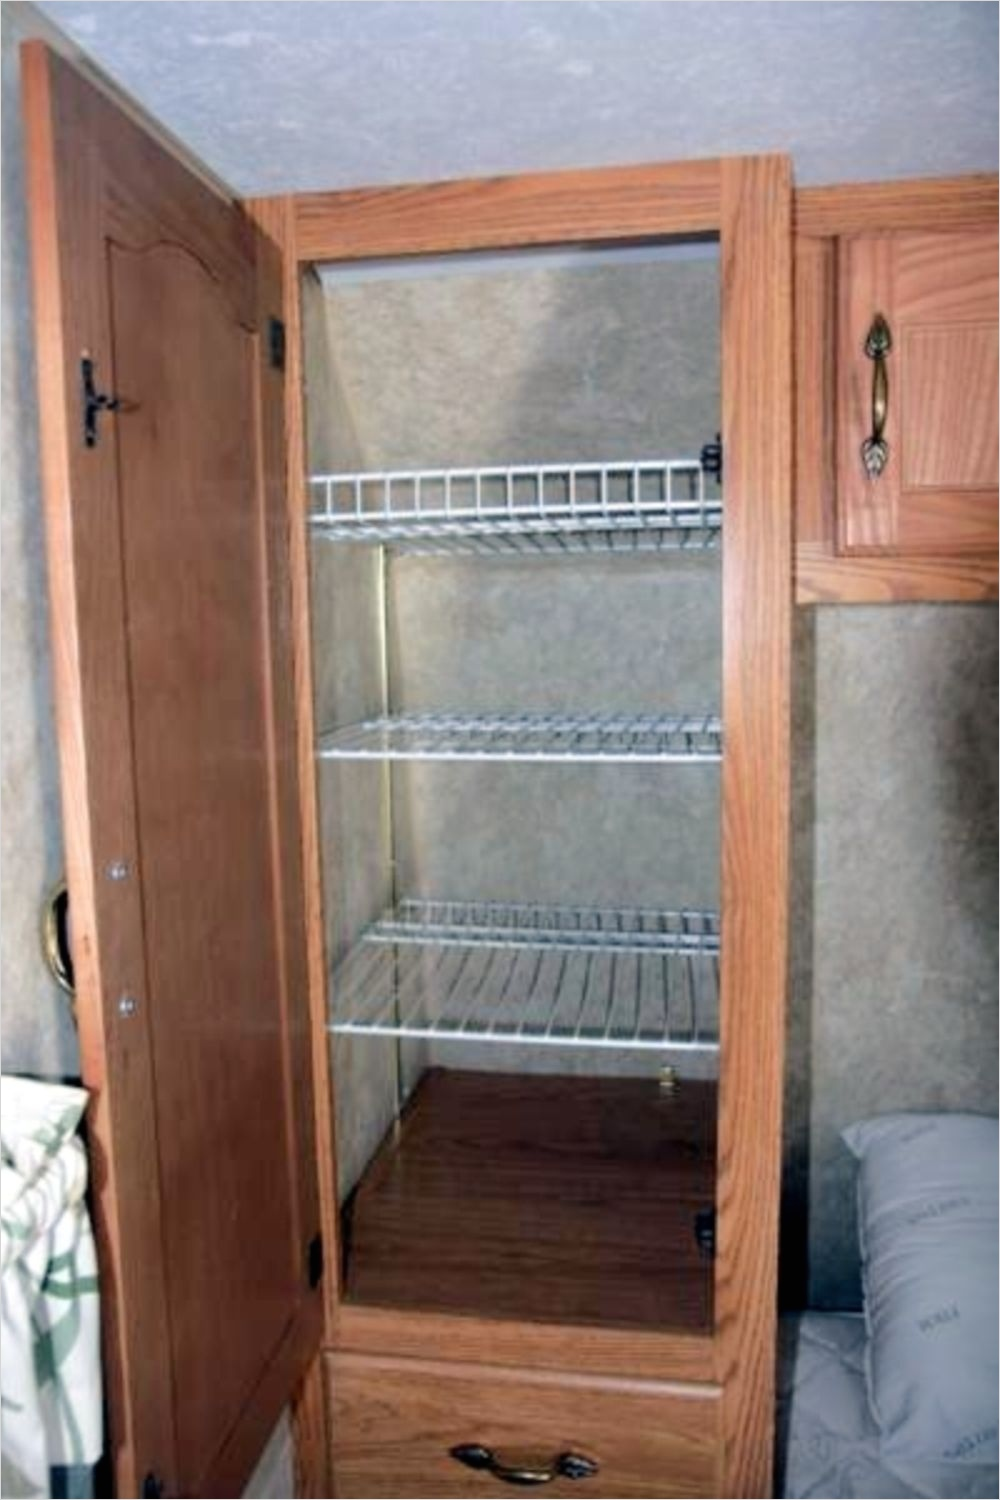 40 Diy Rv Camper Storage Ideas 76 Clever Travel Trailer organization Rv Storage Ideas 3 Homedecort 3